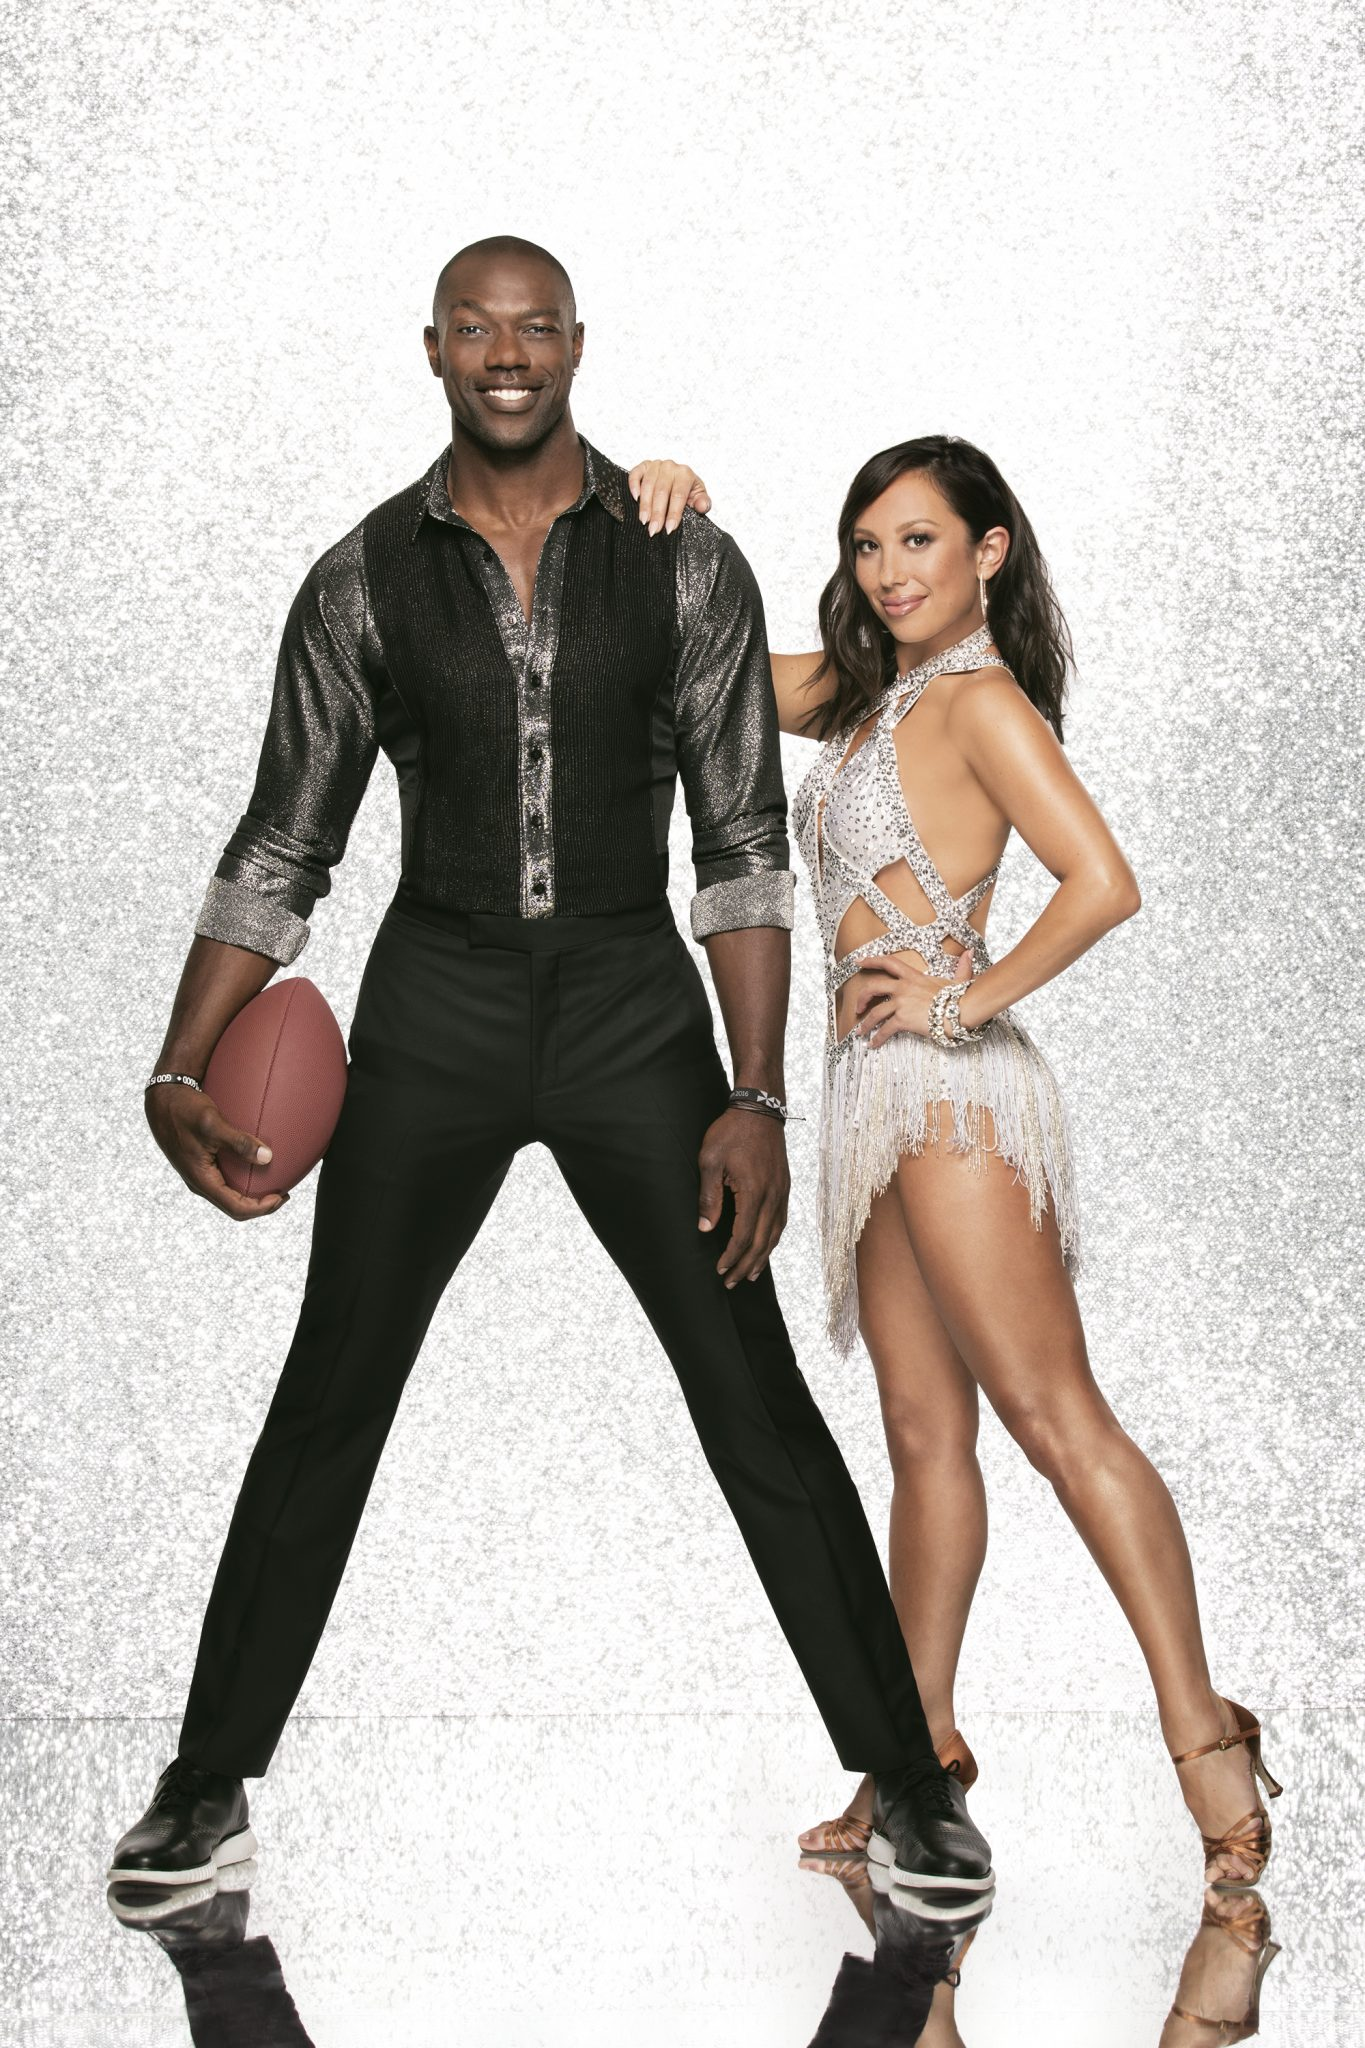 ABC Announces Full Cast of Dancing With The Stars Season 25